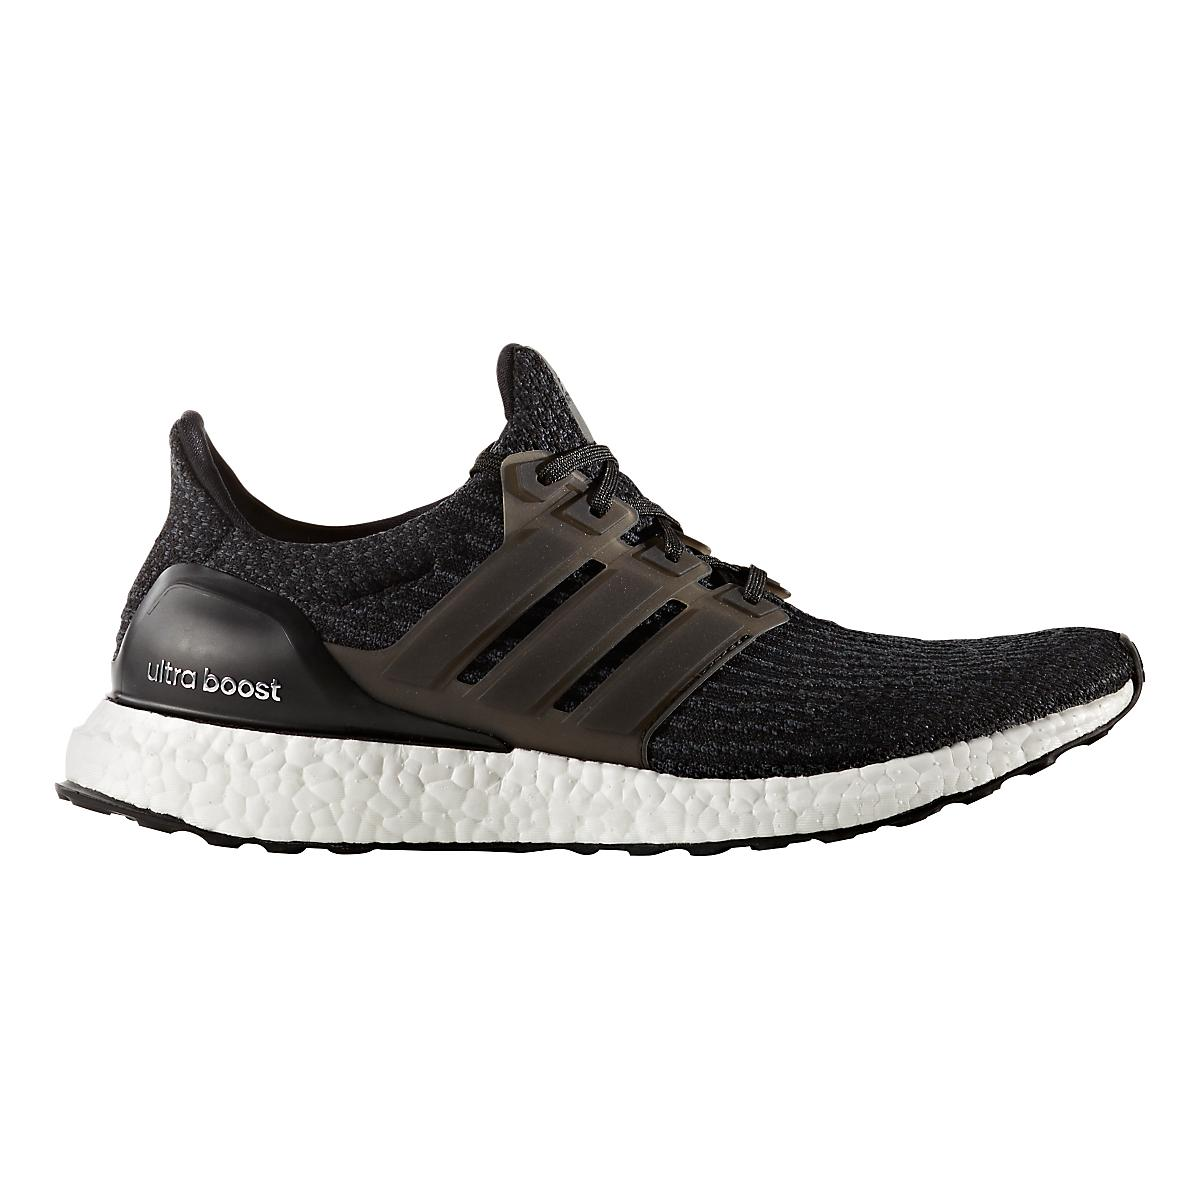 a06ceea94fb98 Men s Adidas Ultra Boost Running Shoes from Road Runner Sports